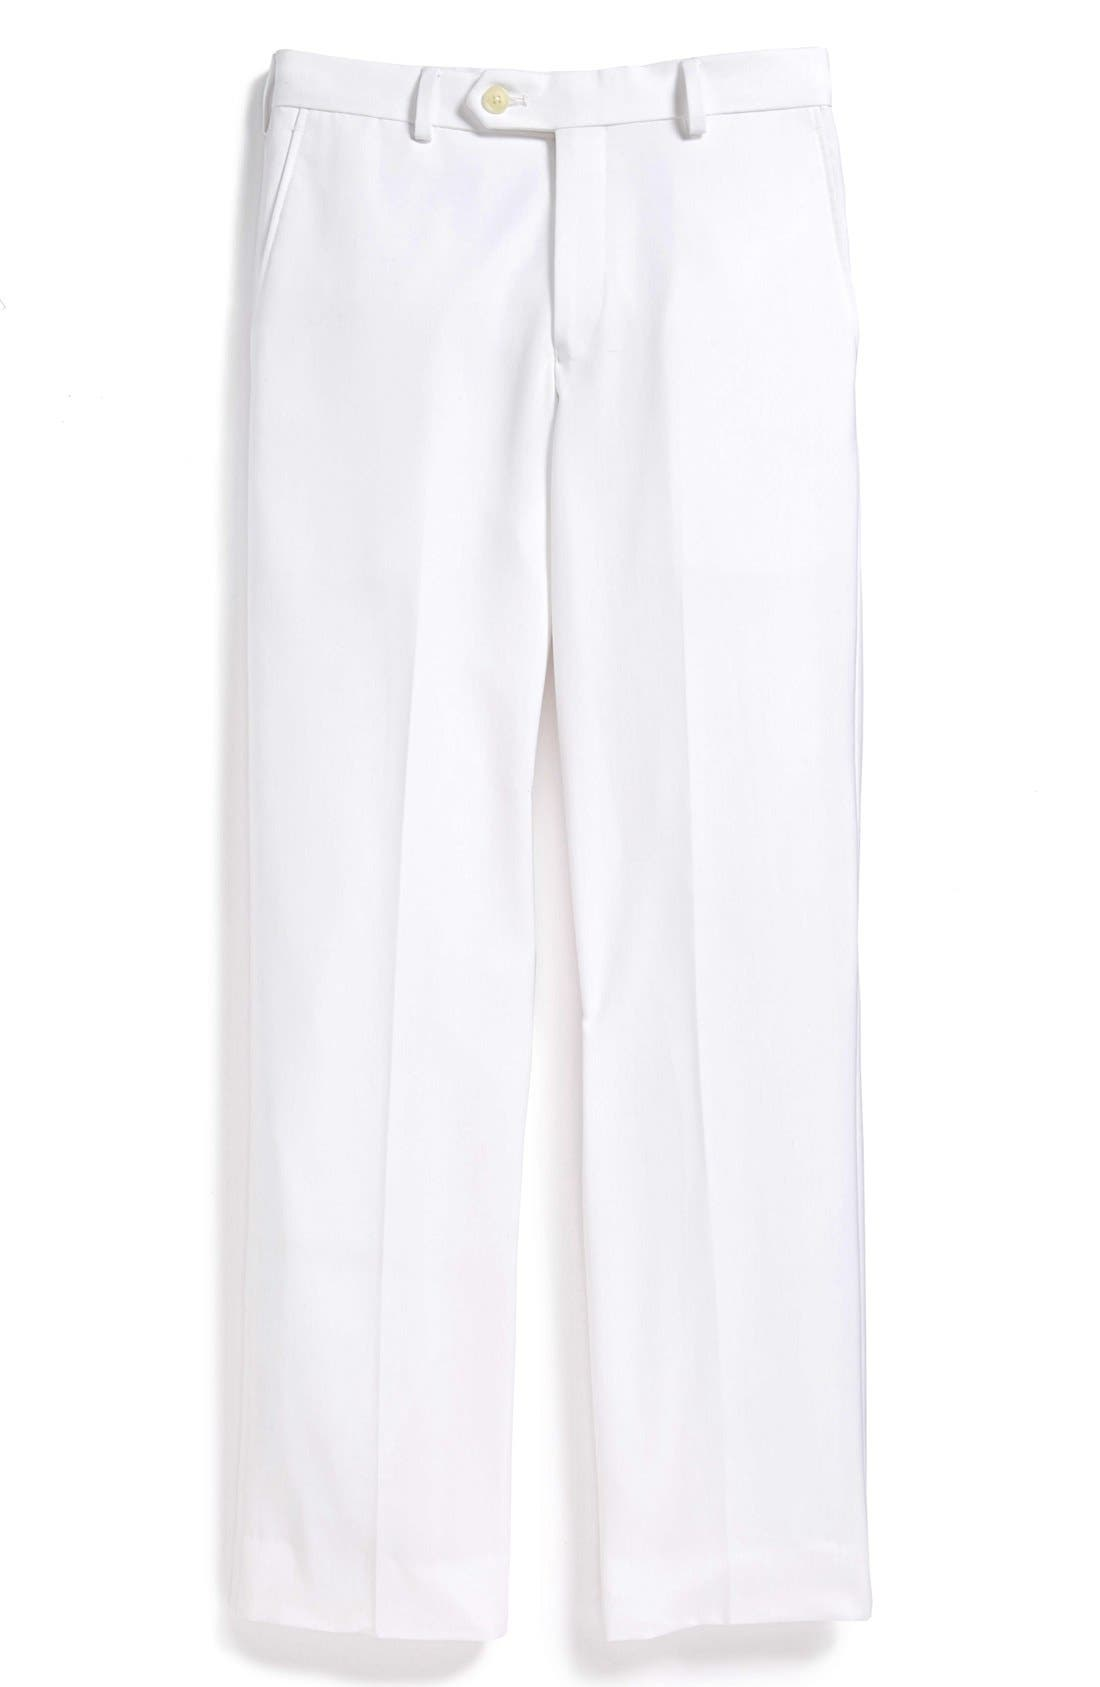 Alternate Image 1 Selected - Nordstrom Flat Front Trousers (Little Boys, Big Boys & Husky)